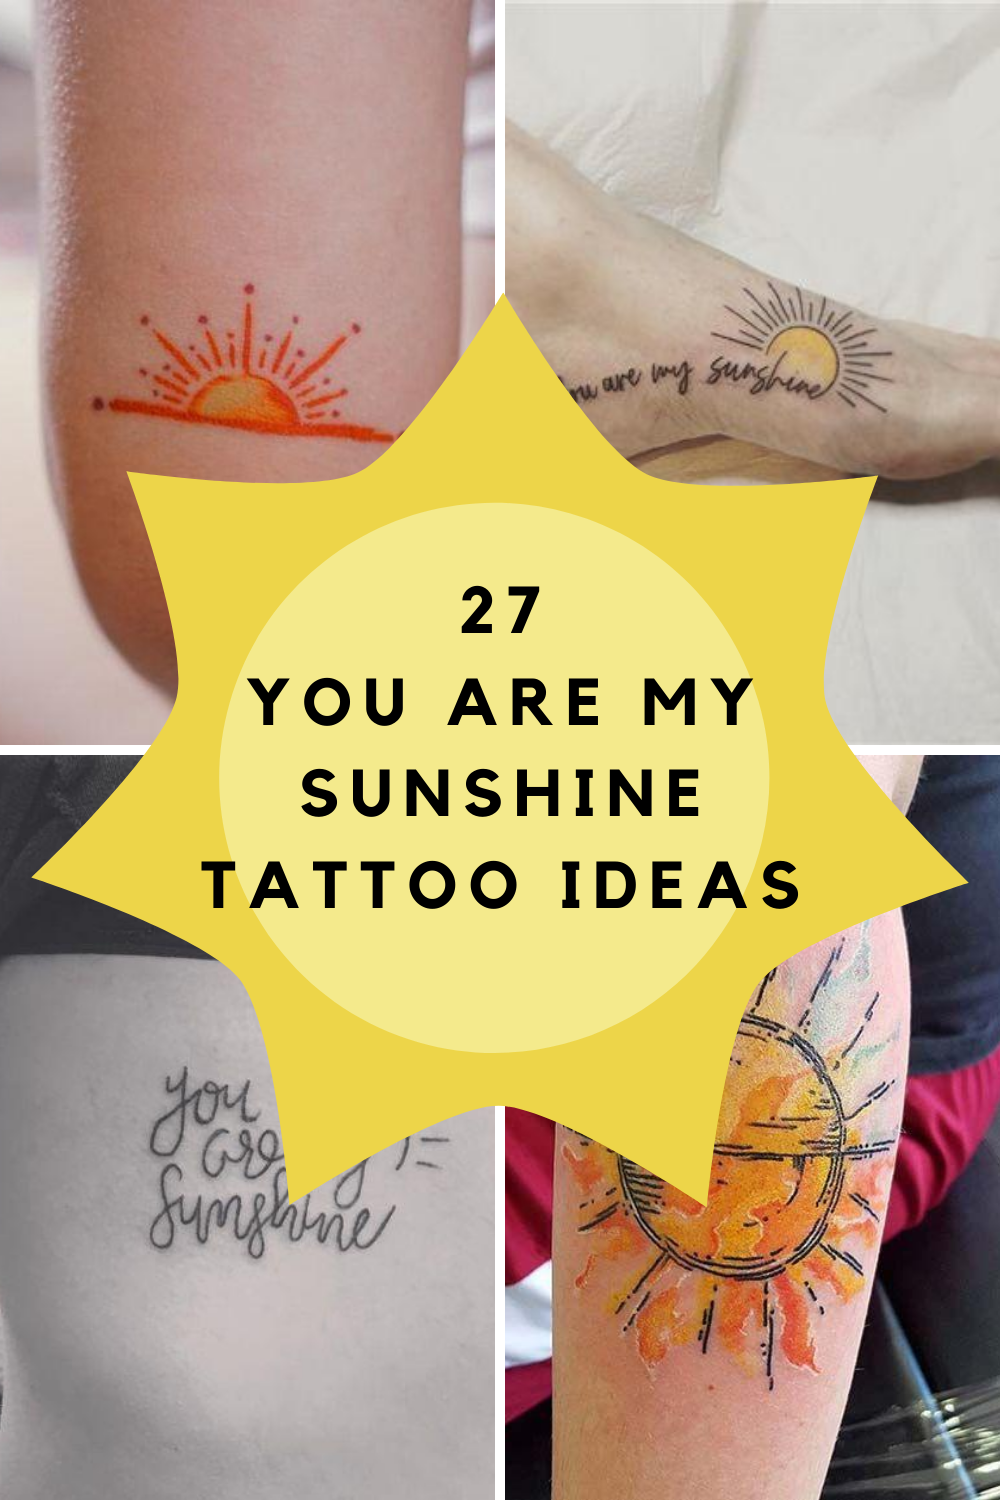 You are my Sunshine Tattoo Ideas